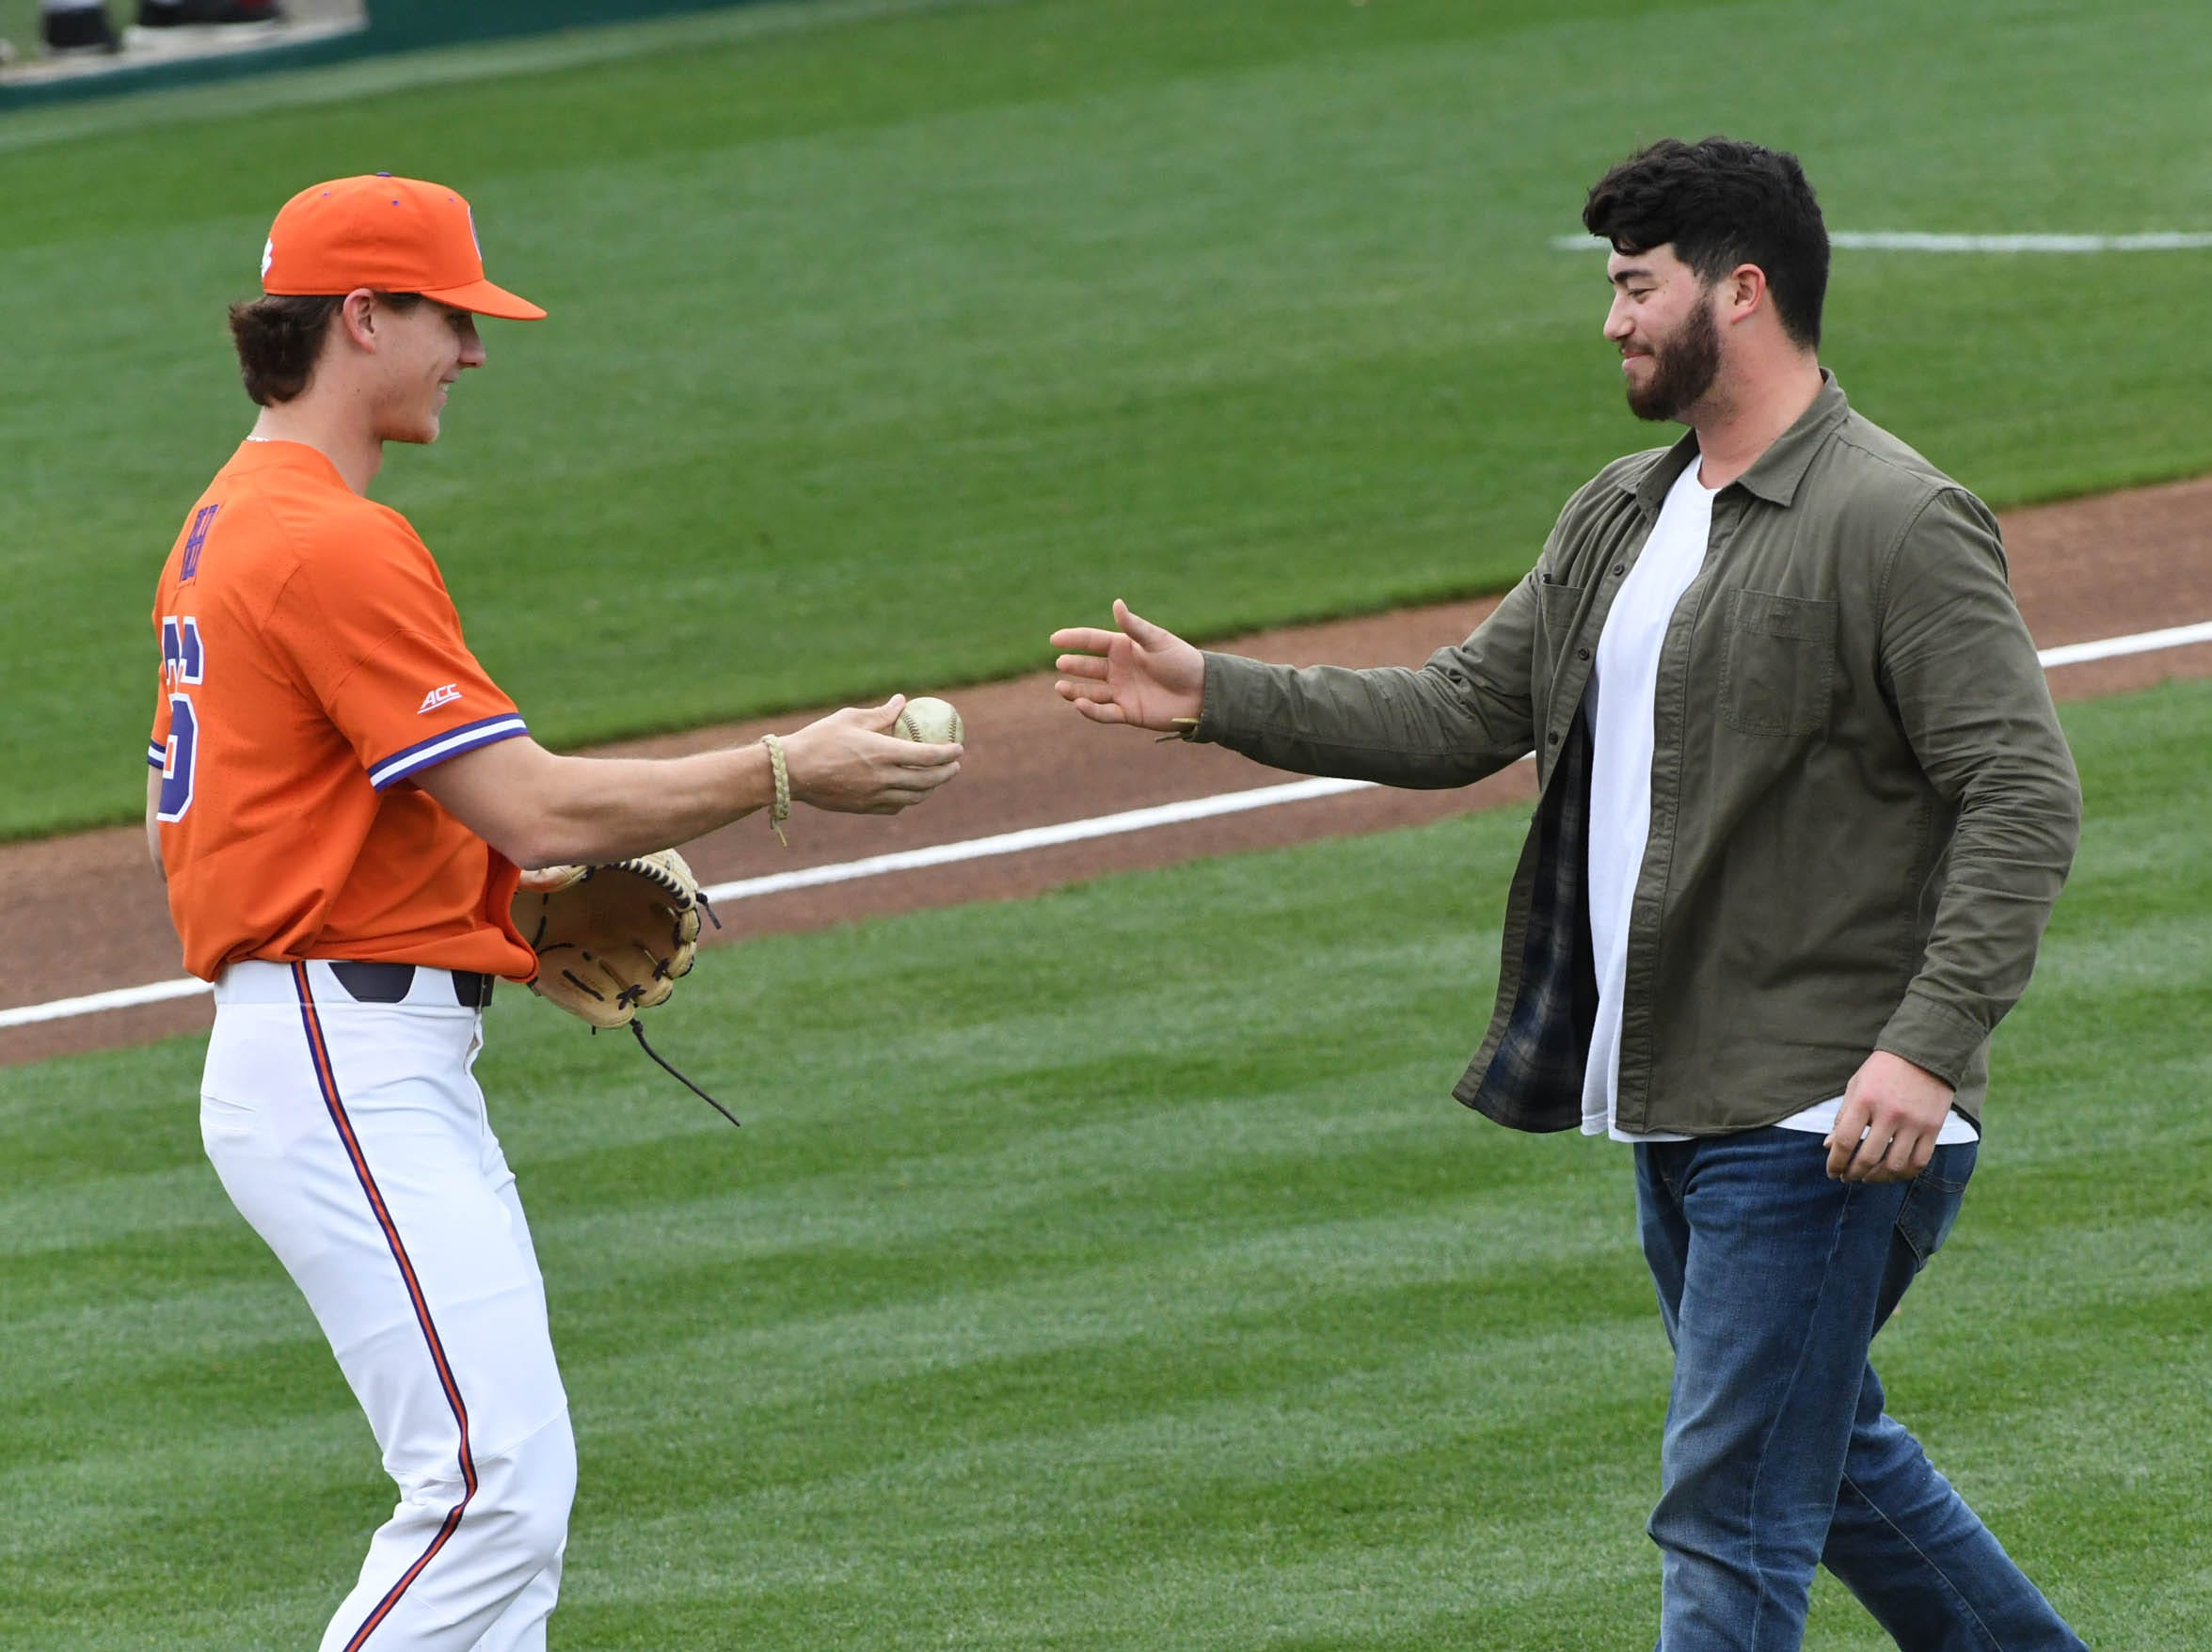 Clemson junior Sheldon Reed(36) gives former Clemson baseball player Chris Williams the ceremonial first pitch ball before the game at Doug Kingsmore Stadium in Clemson Friday, February 15, 2019.